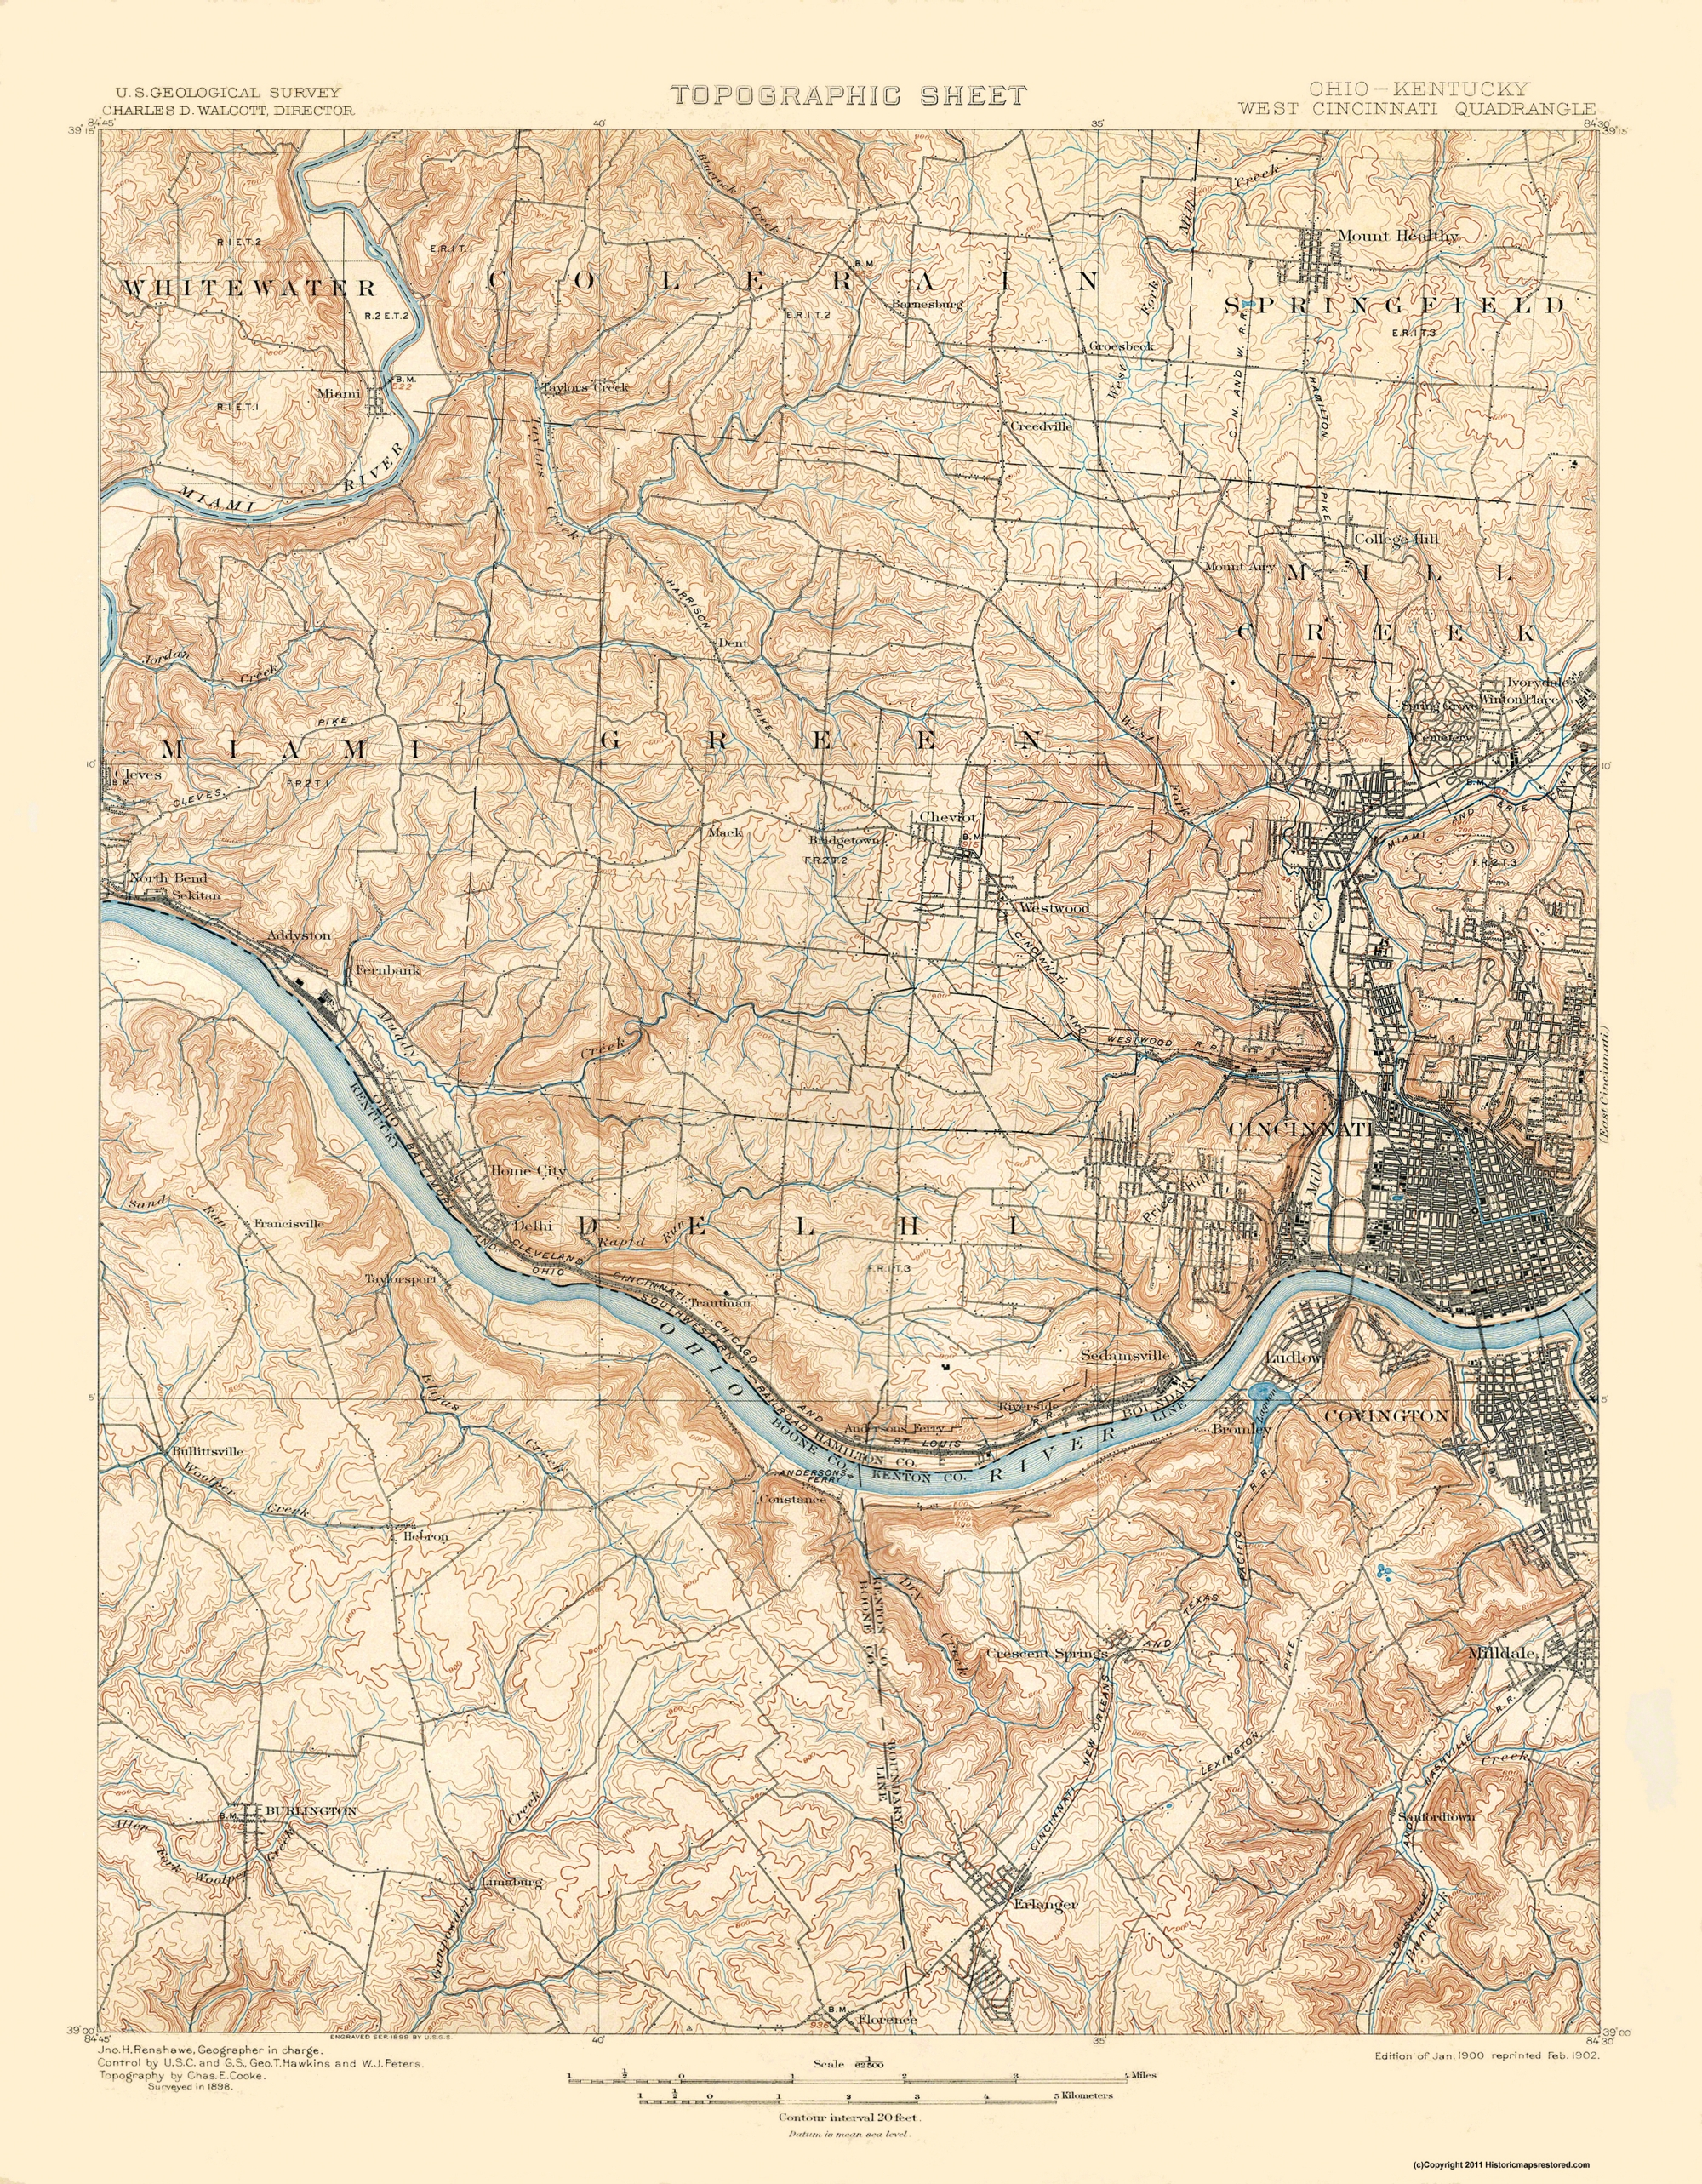 Topographical Map Cincinnati West Ohio Kentucky 1900